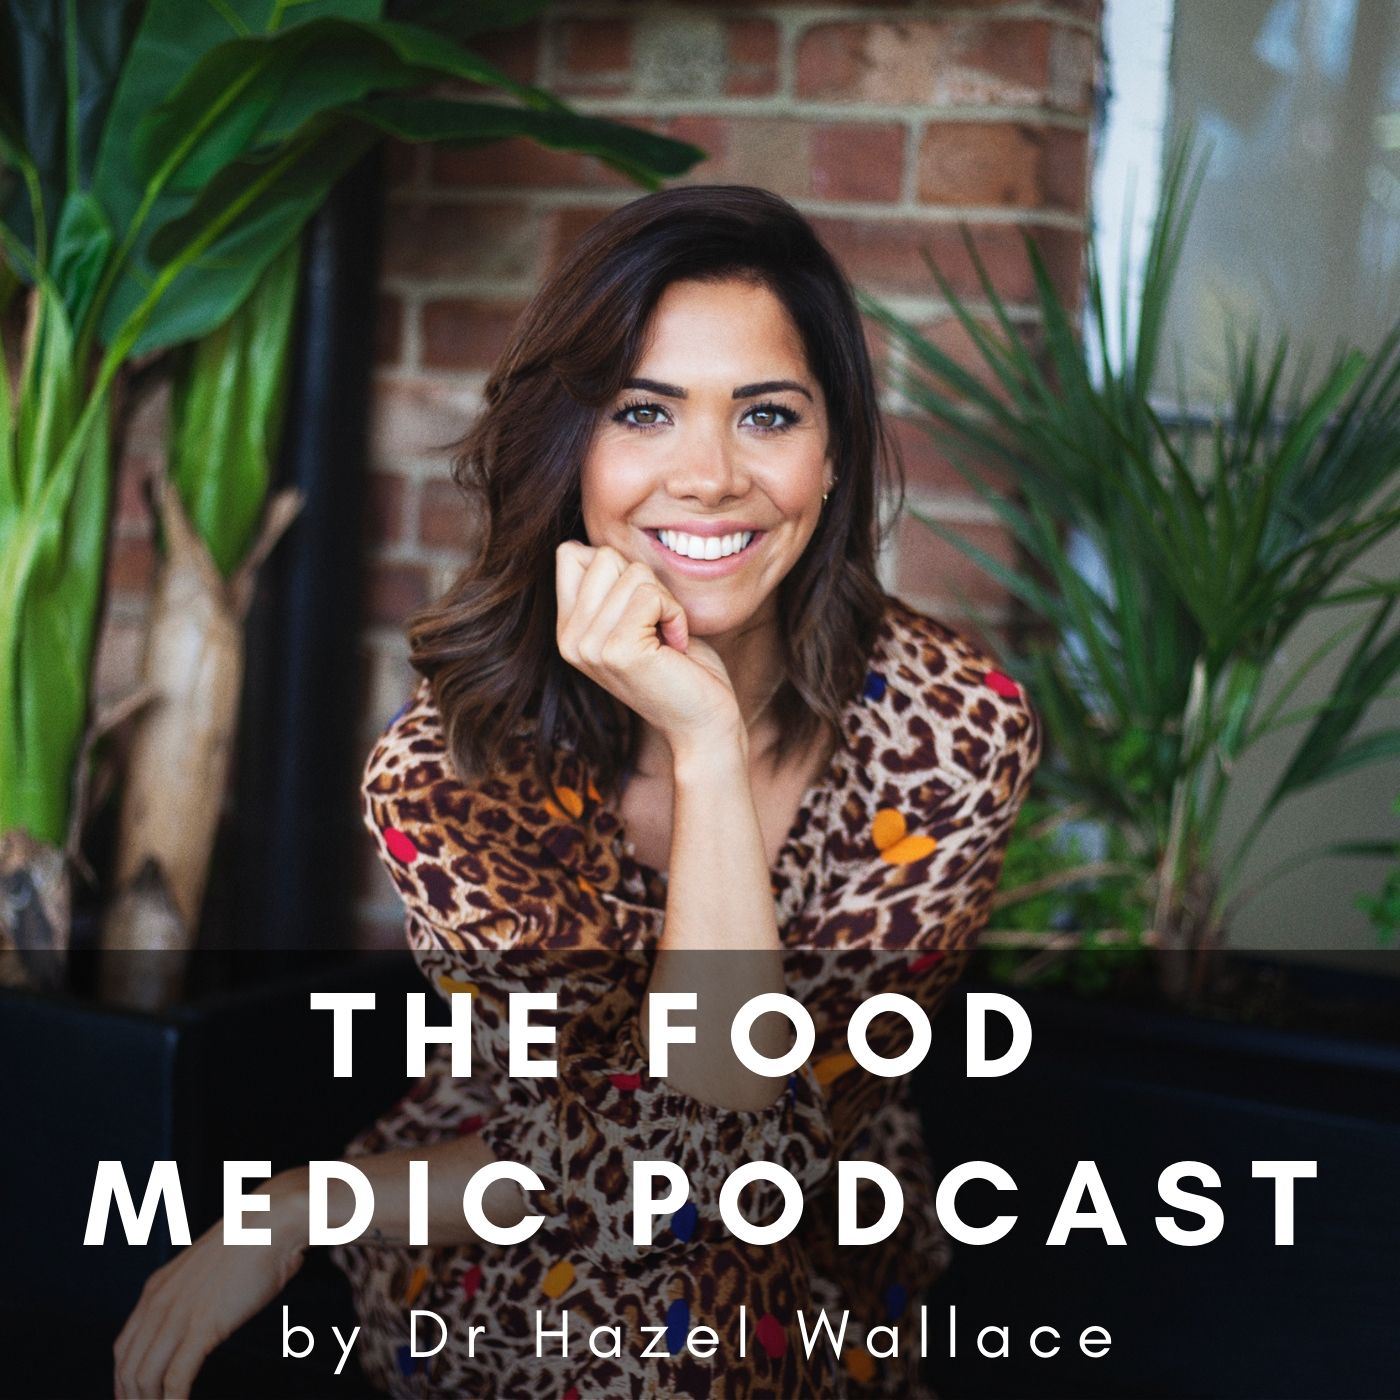 S2 E5 - Ditching Diet culture with Laura Thomas